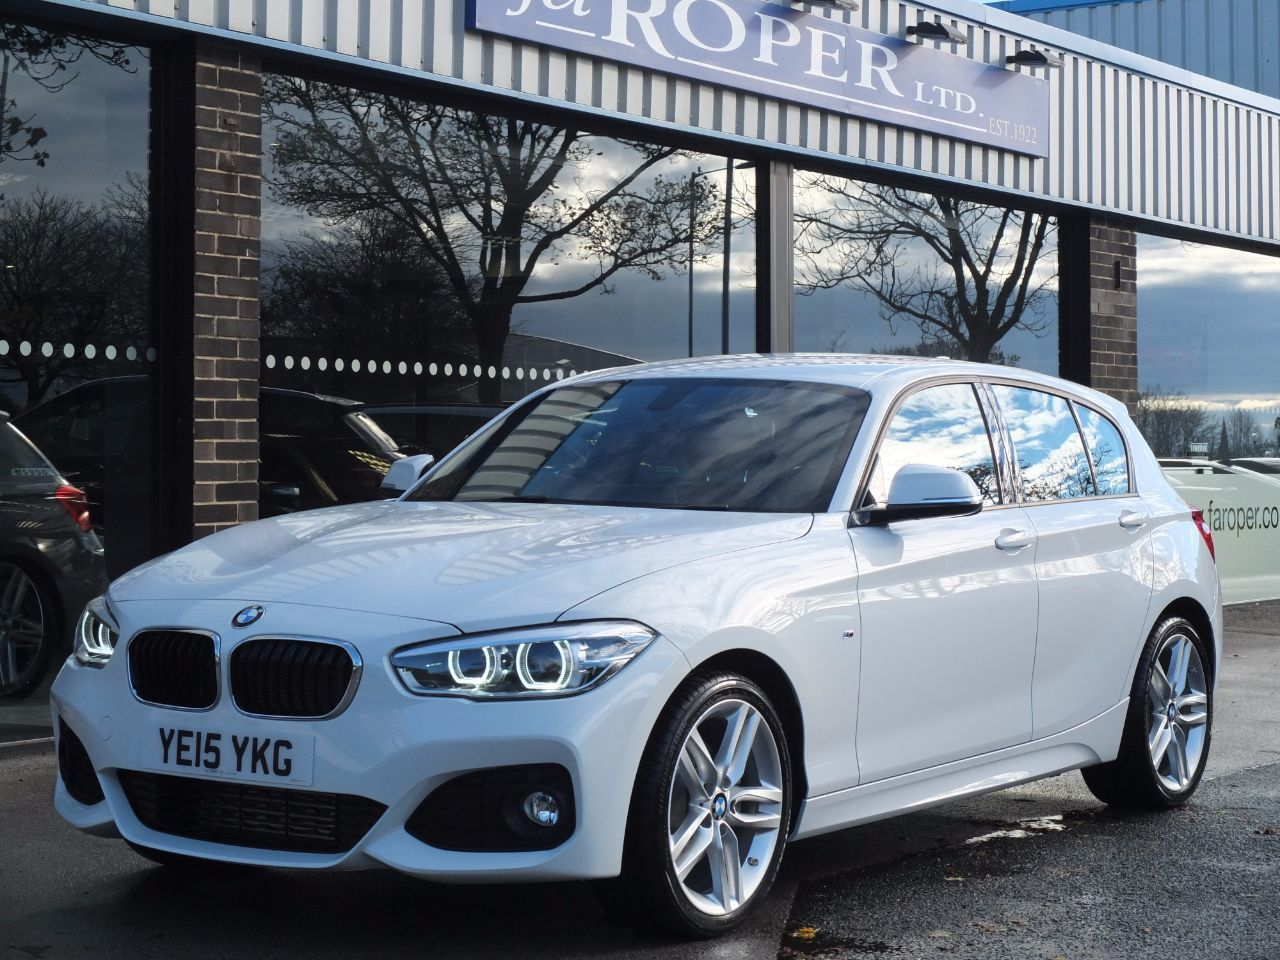 BMW 1 Series 2.0 125d M Sport 5 Door Auto New Model (Pro Media, Leather) Hatchback Diesel Alpine WhiteBMW 1 Series 2.0 125d M Sport 5 Door Auto New Model (Pro Media, Leather) Hatchback Diesel Alpine White at fa Roper Ltd Bradford